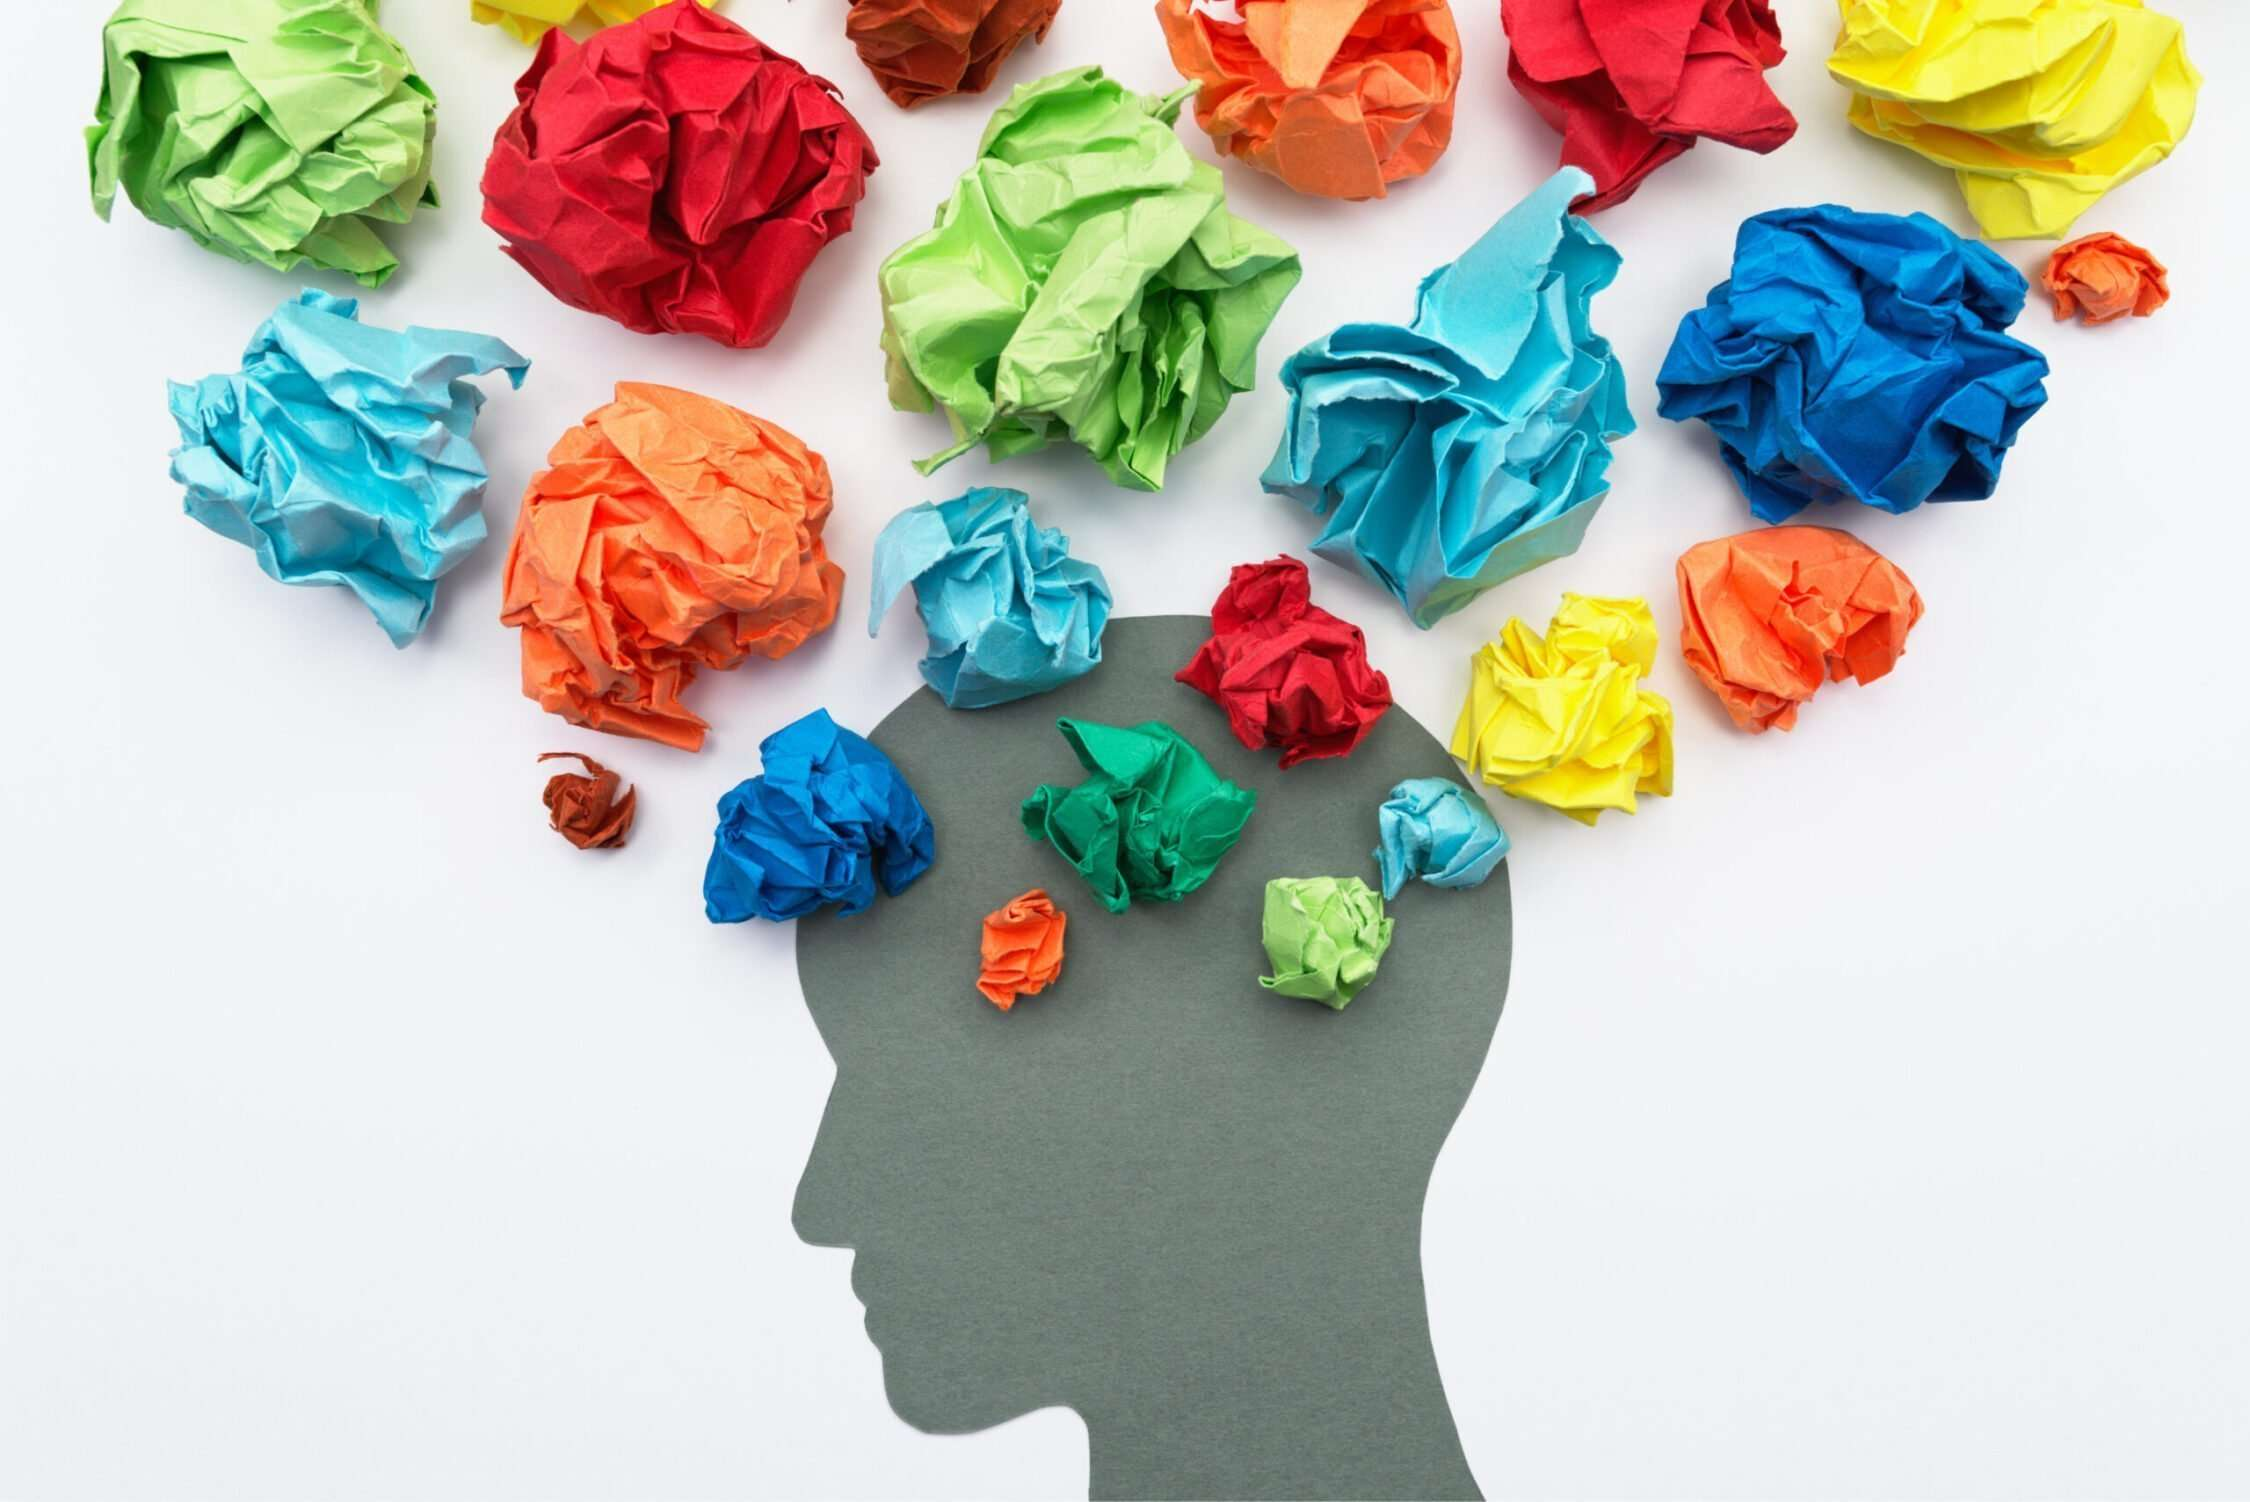 Mental health - head with coloured crumpled paper